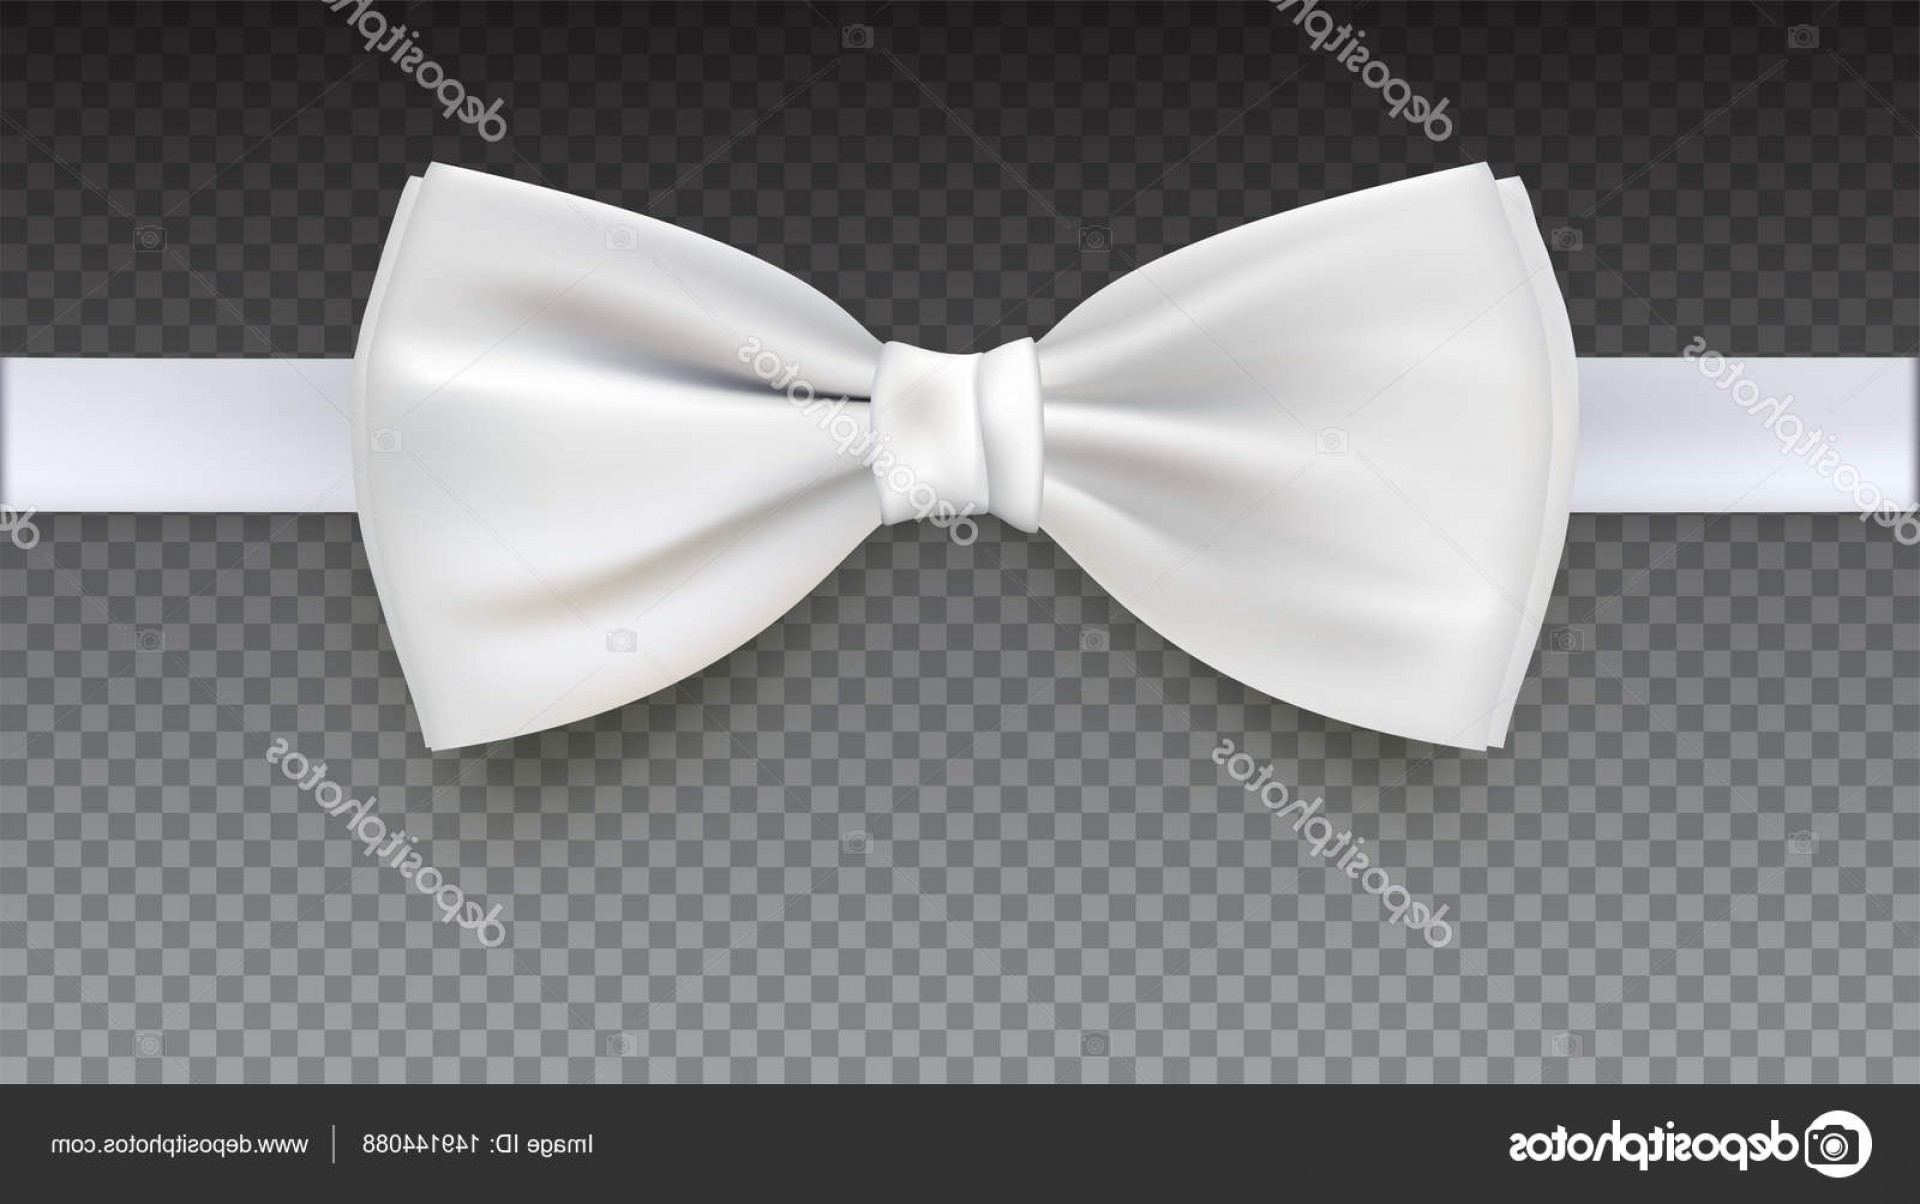 Bow Tie Vector Graphic Transparent: Stock Illustration Realistic White Bow Tie Vector